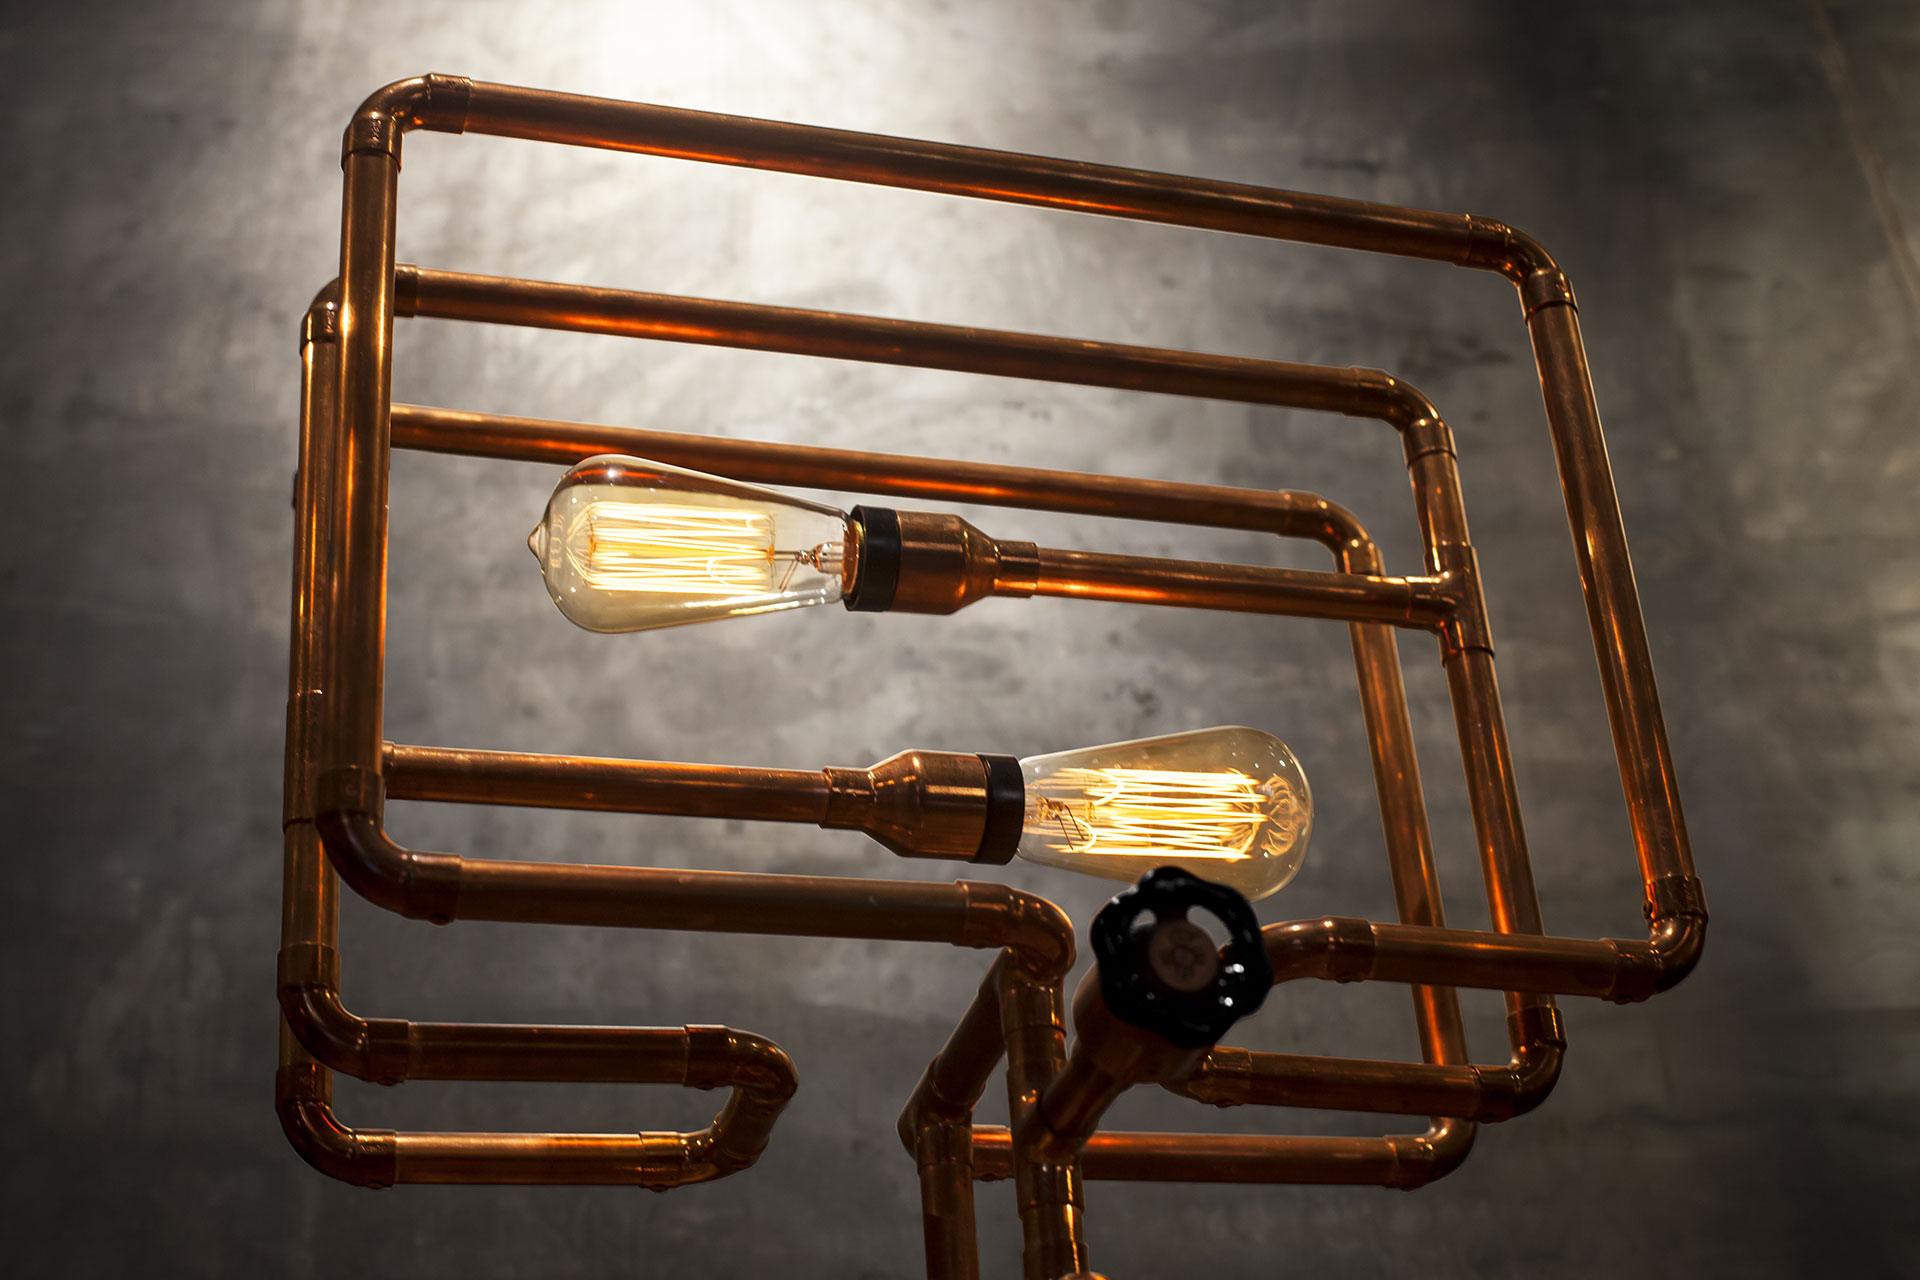 Copper tubing conosle lamp with knob dimmer and vintage Edison bulbs